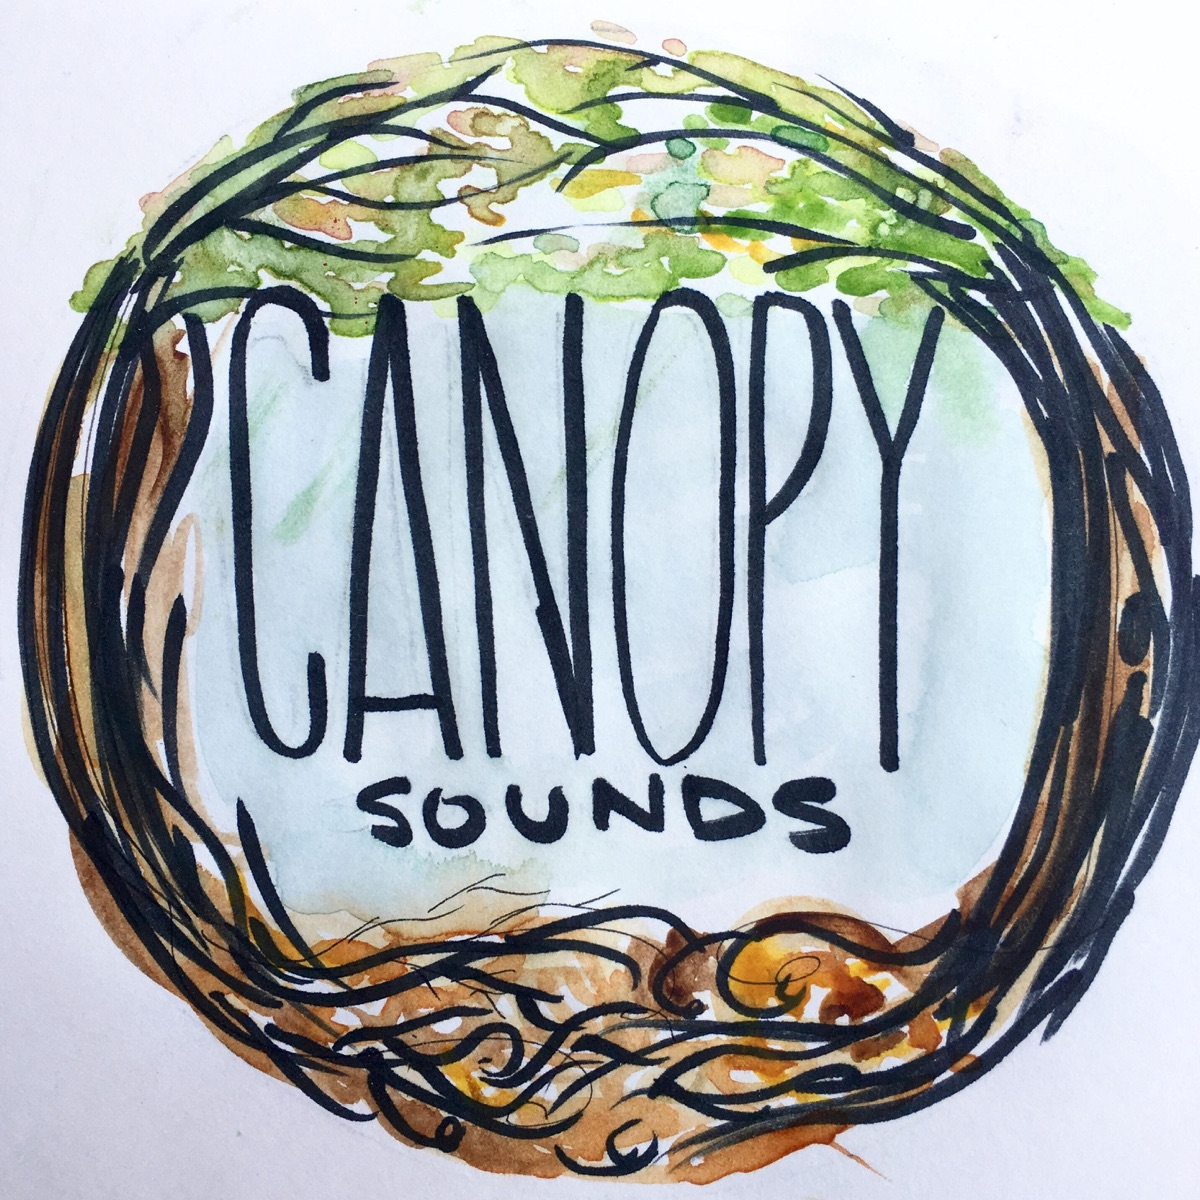 Canopy Sounds 69: Yöurr